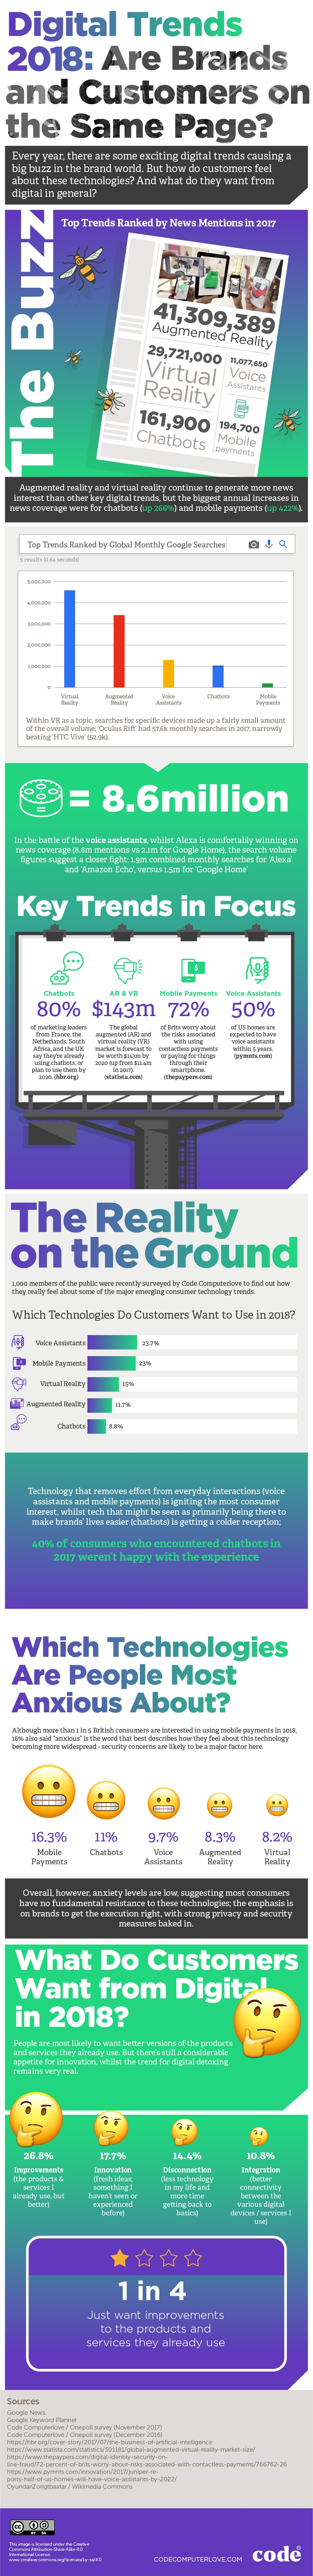 Which Technologies Do Your Customers Actually Want to Use in 2018? [Infographic]